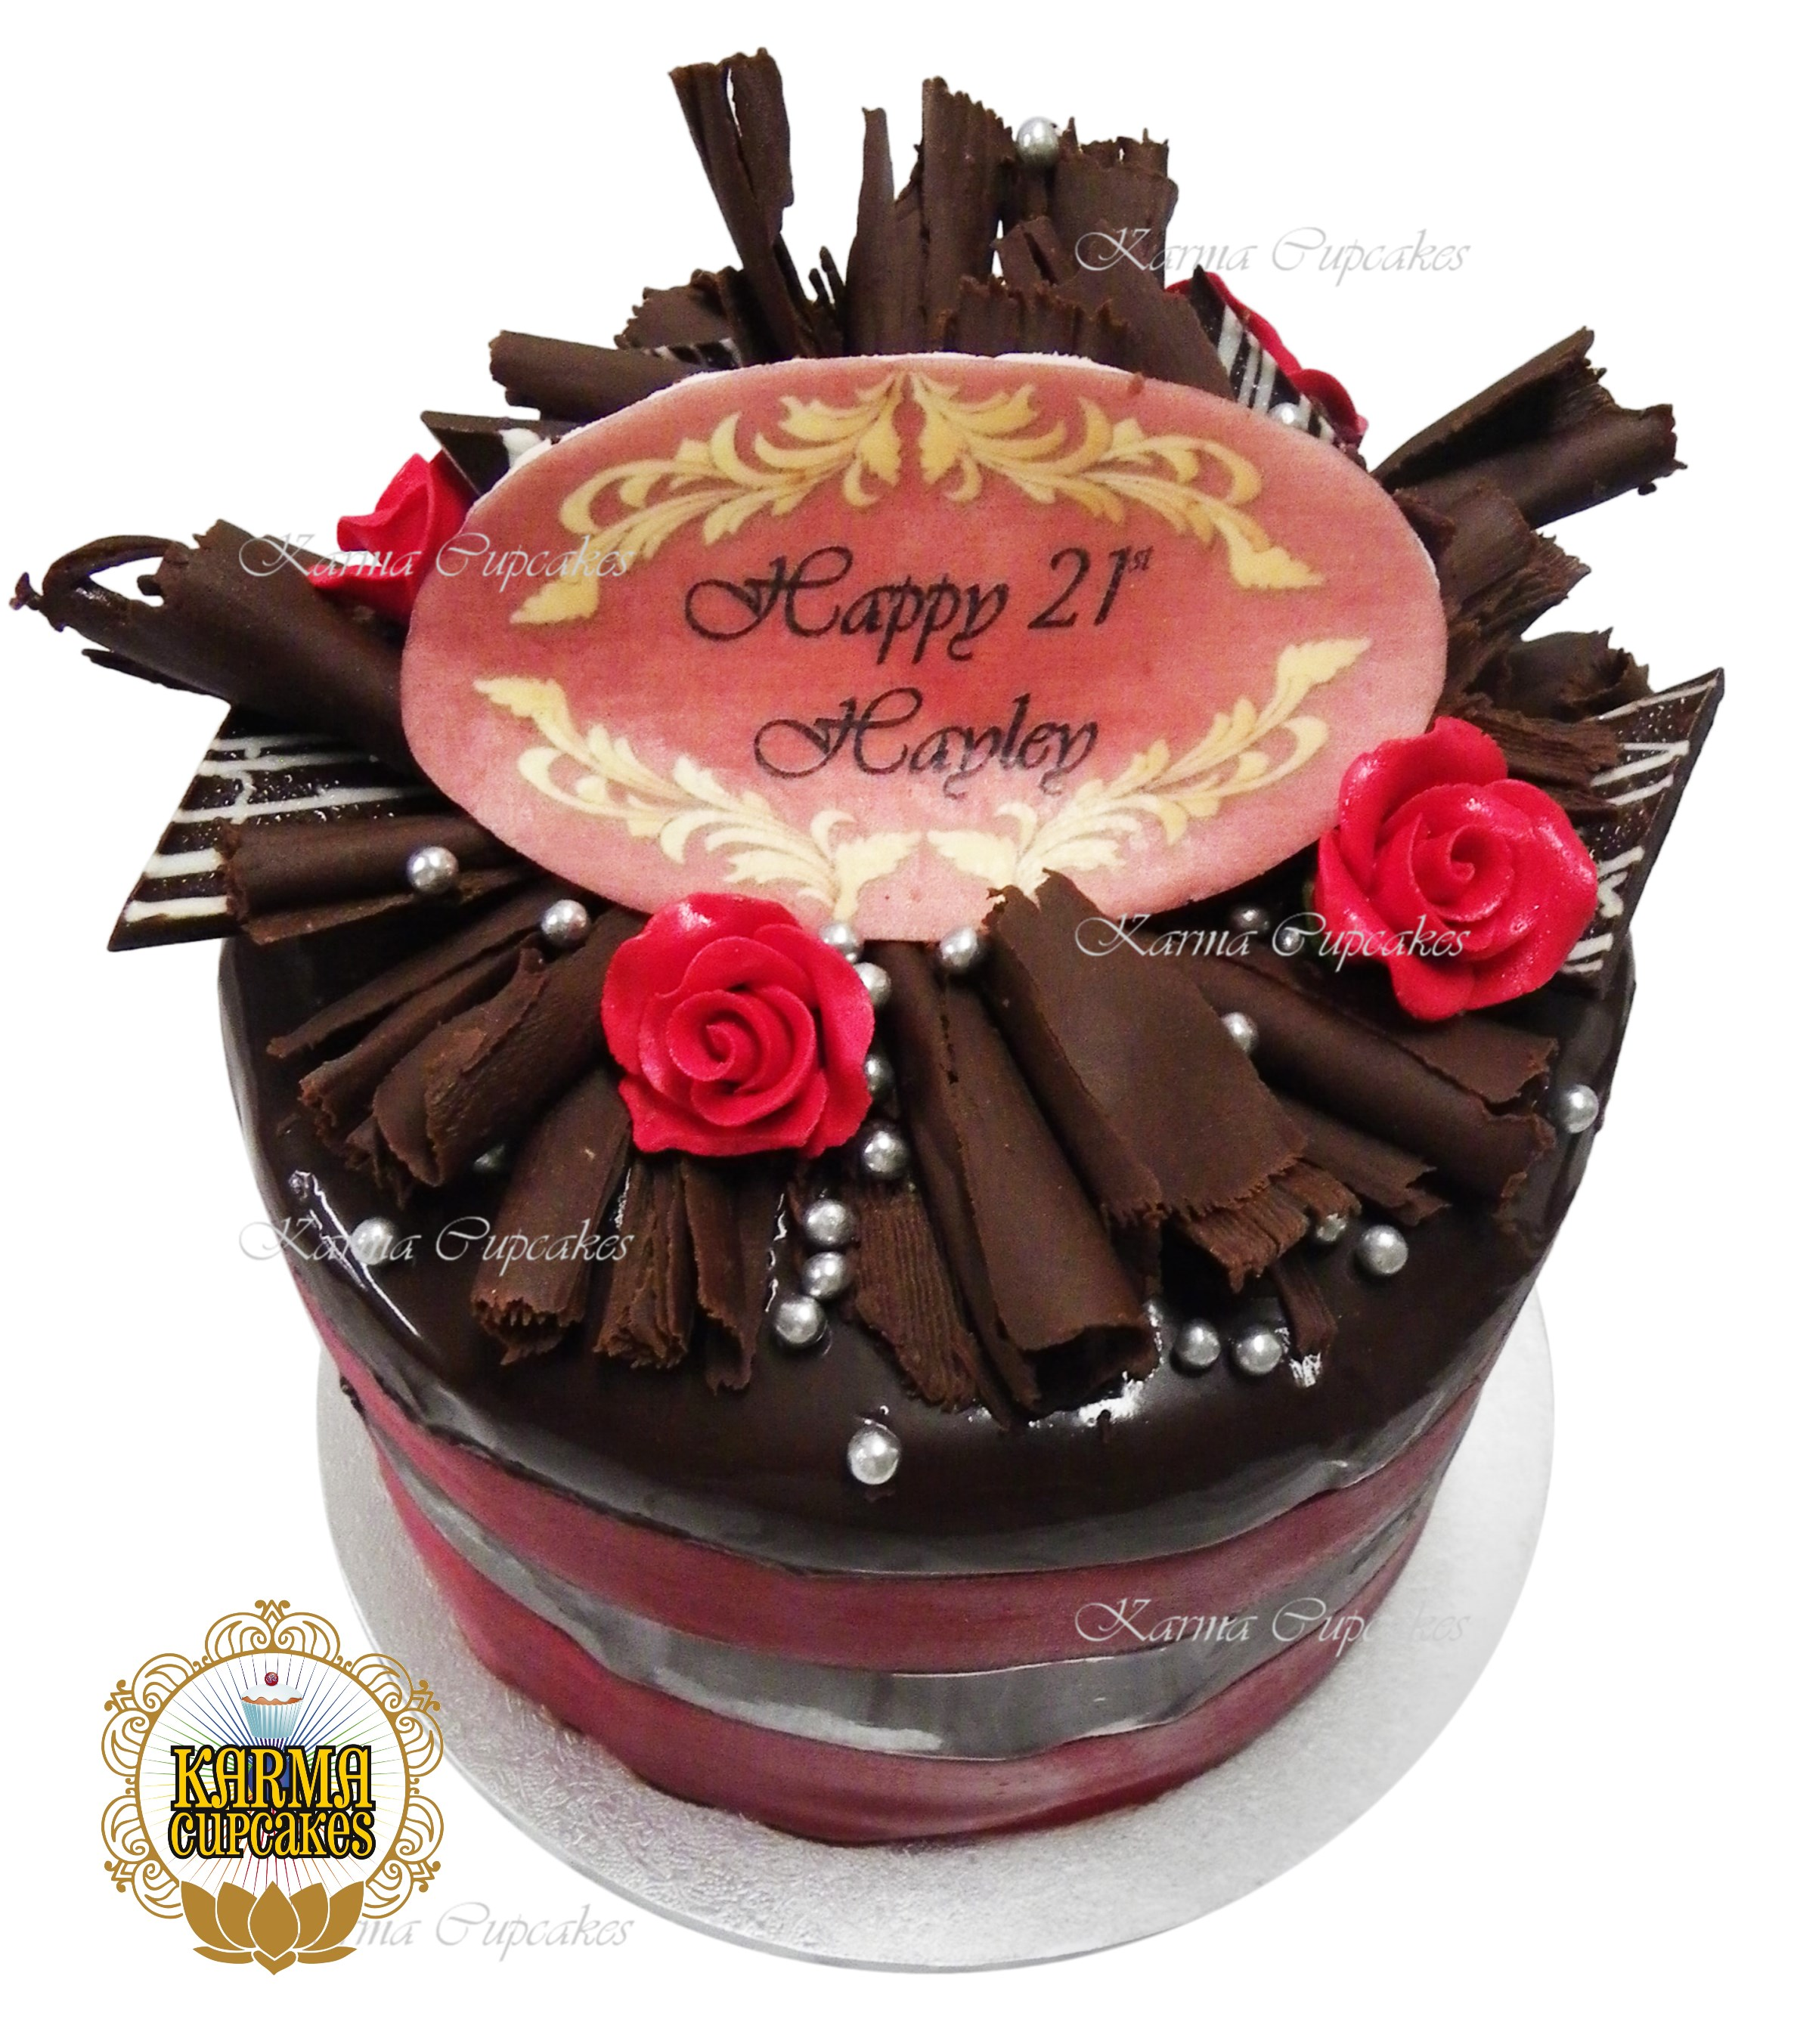 Ganach Iced Cake with Sugar Red Roses